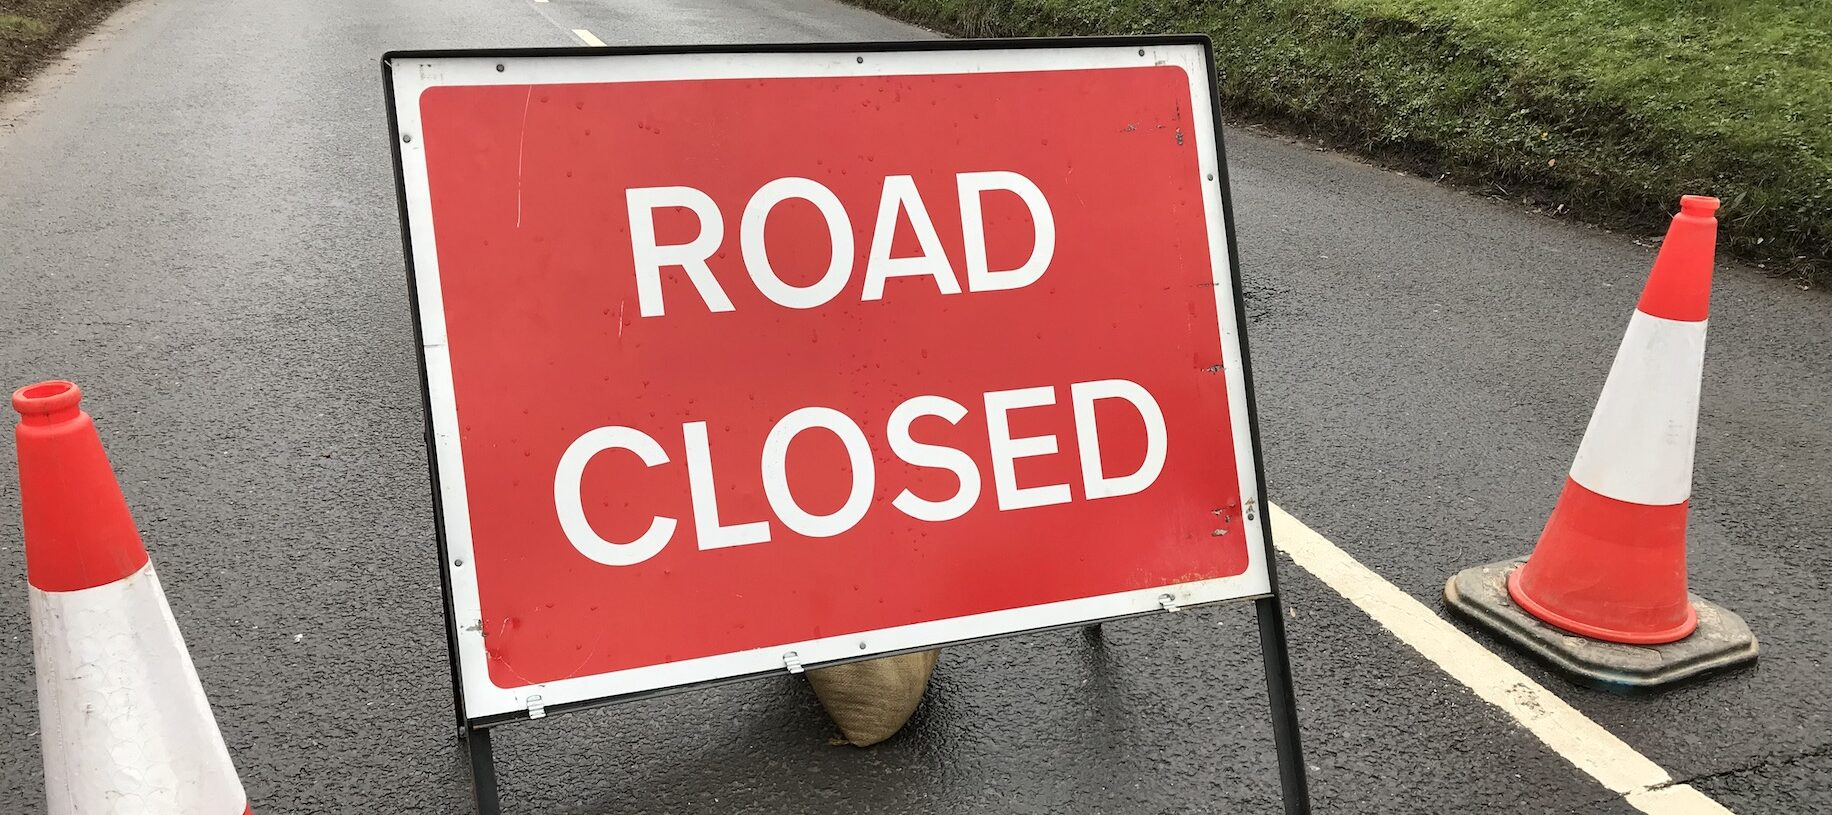 Photo showing road closed sign and traffic cones across a road with more signs and machinery in the background